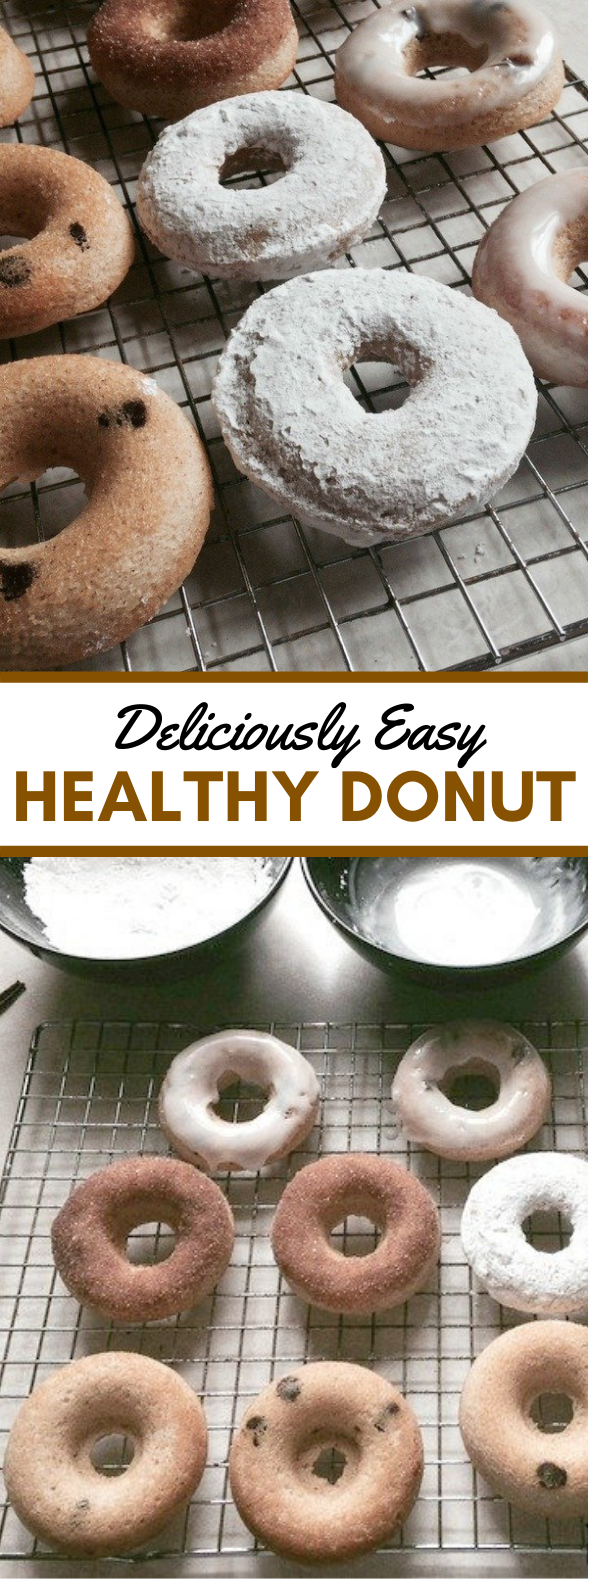 DELICIOUSLY EASY HEALTHY DONUT RECIPE #lowcalorie #diet